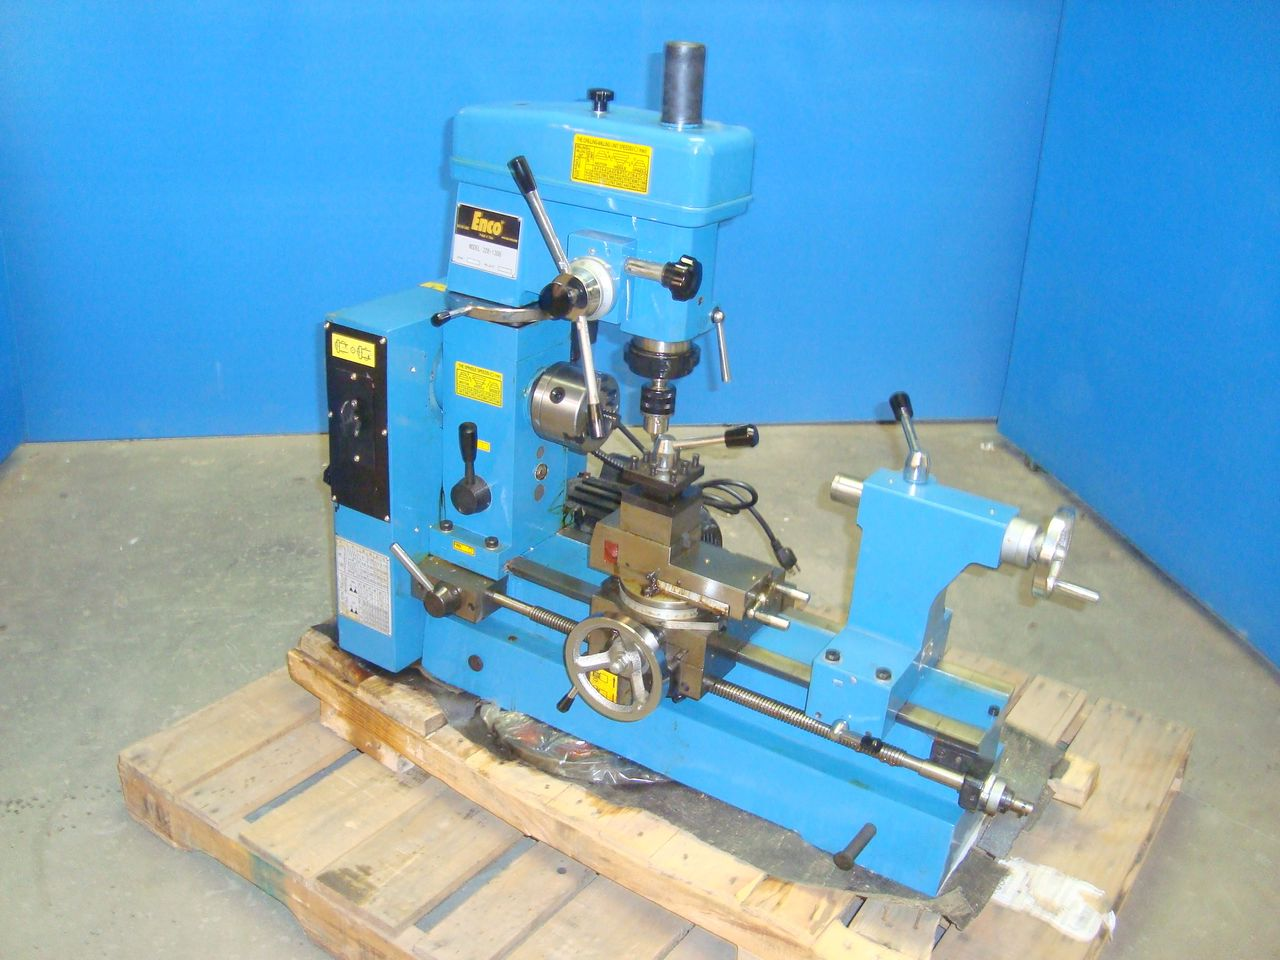 ENCO-3-in-1-Mill-Lathe-Drill-Press-Combo-Machine